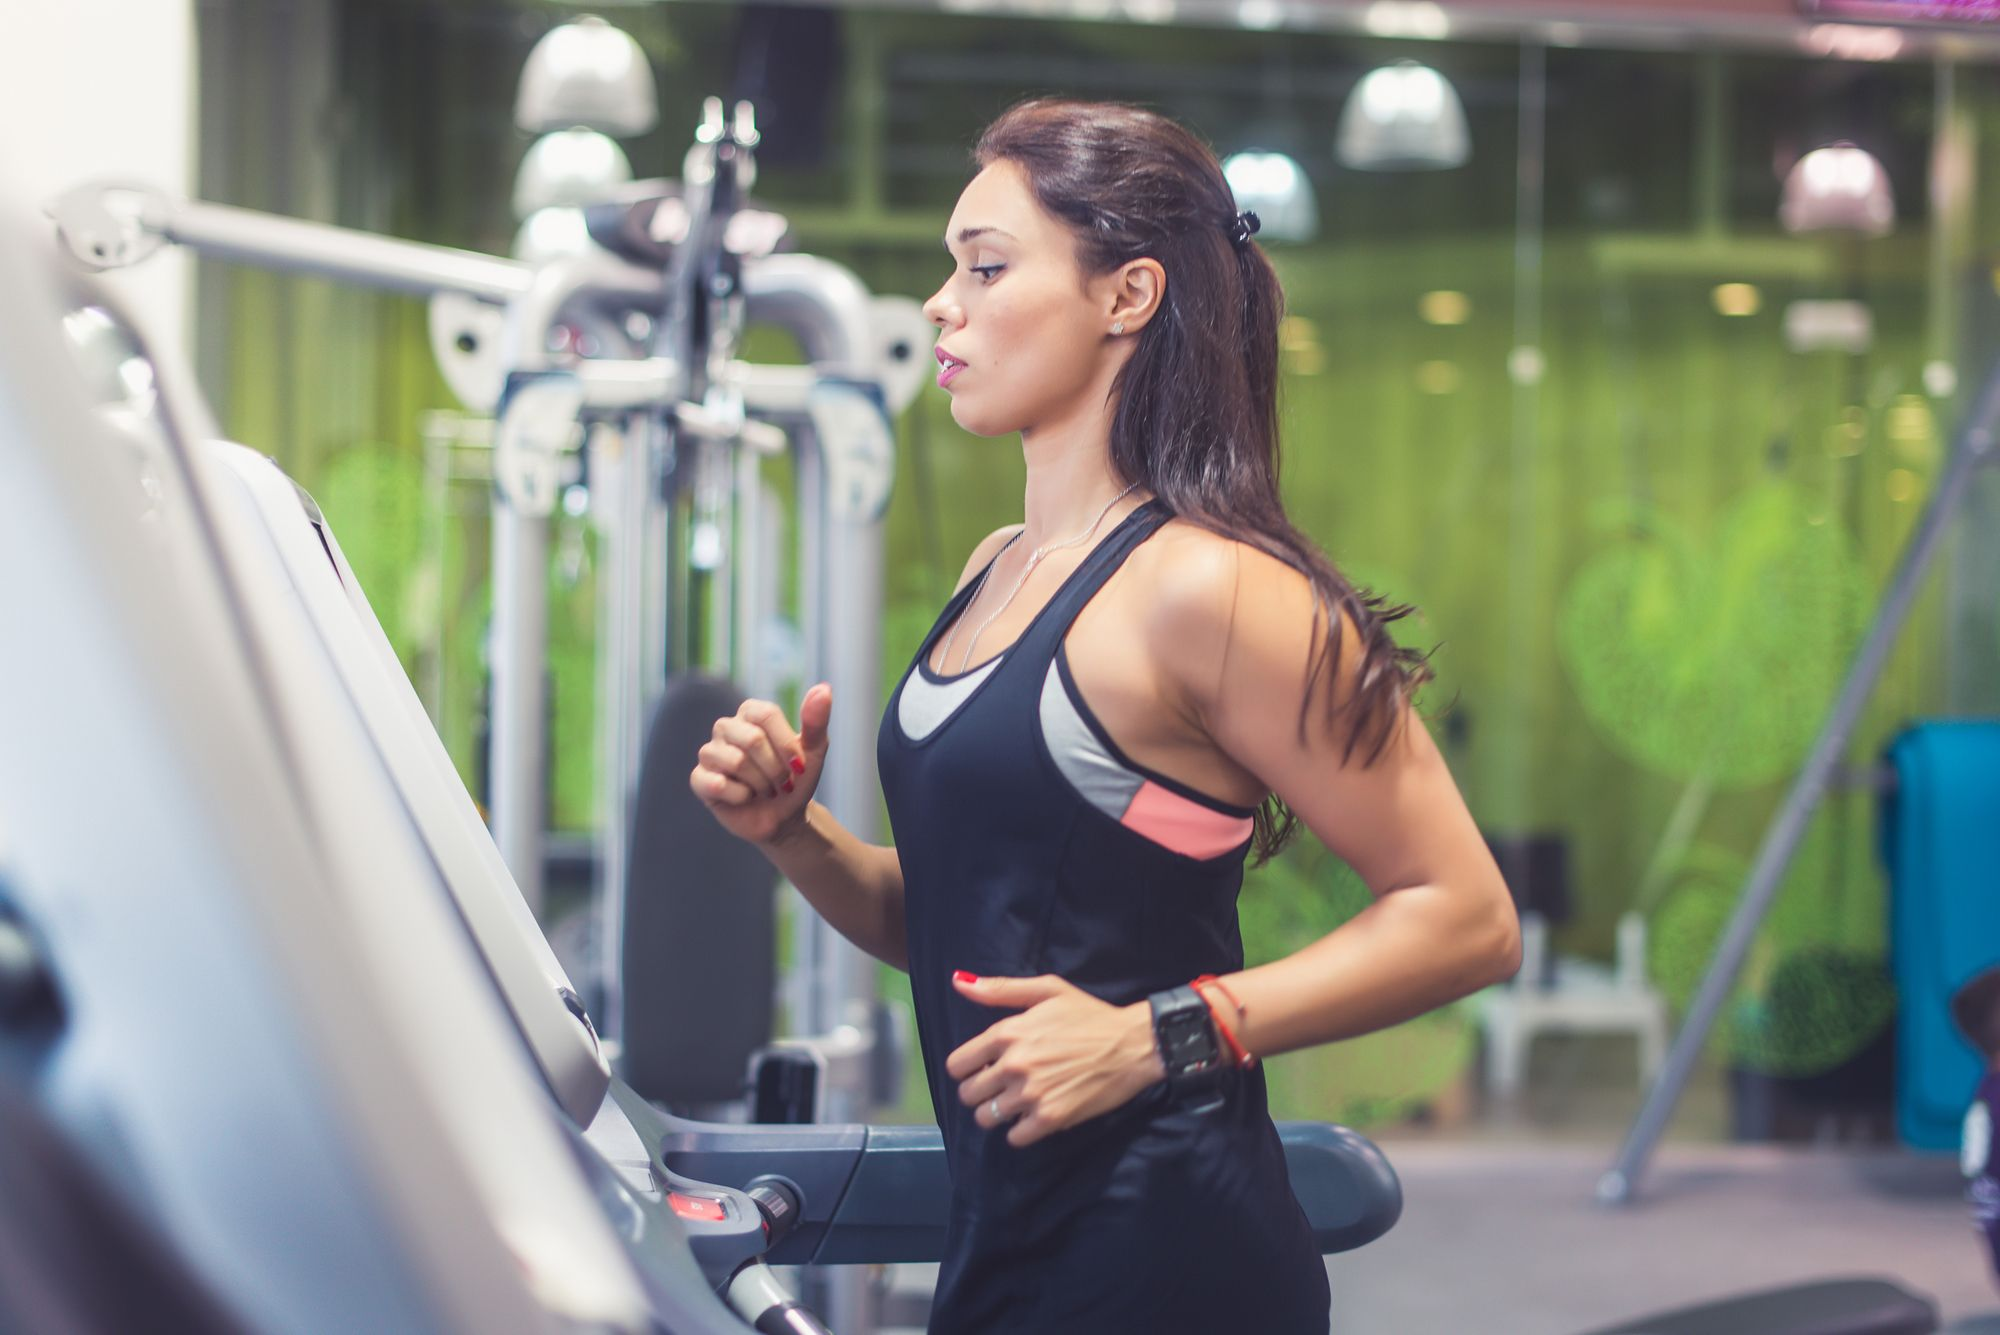 Celebrities and their fitness routines Fit women